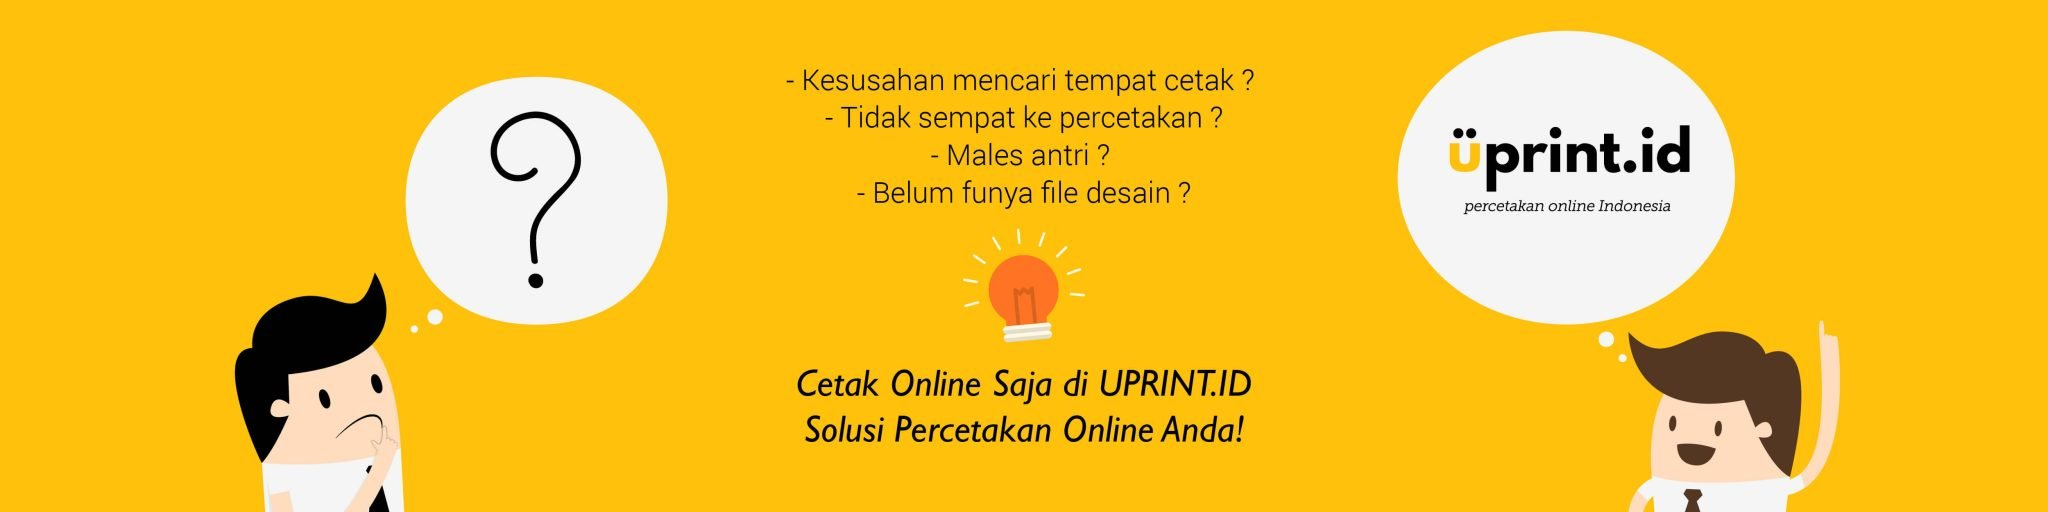 uprint percetakan online indonesia